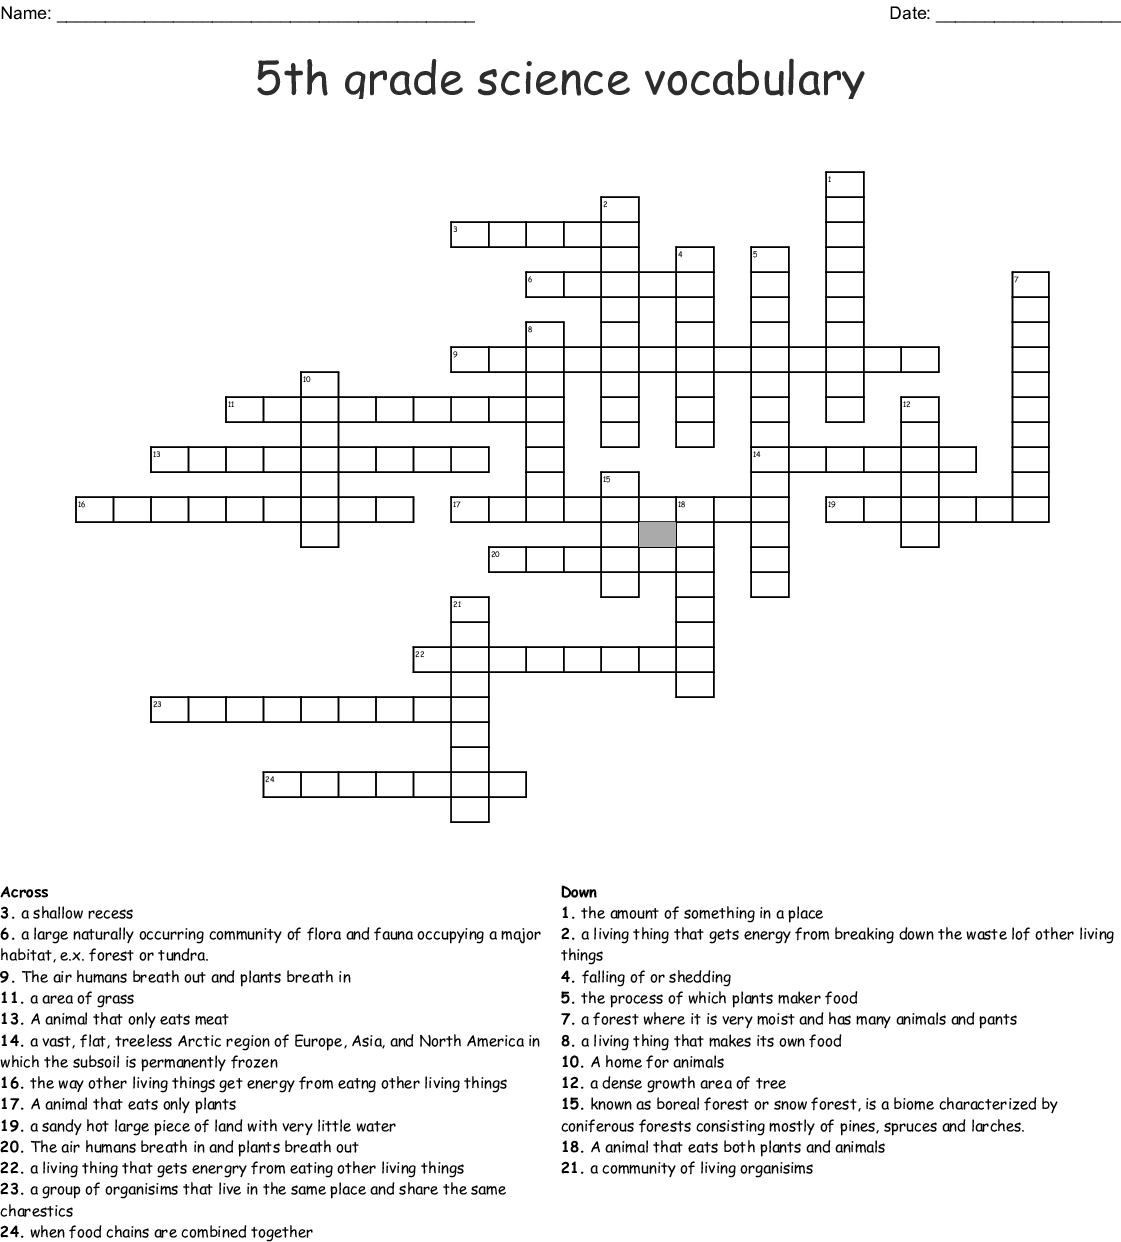 5th Grade Science Vocabulary Crossword